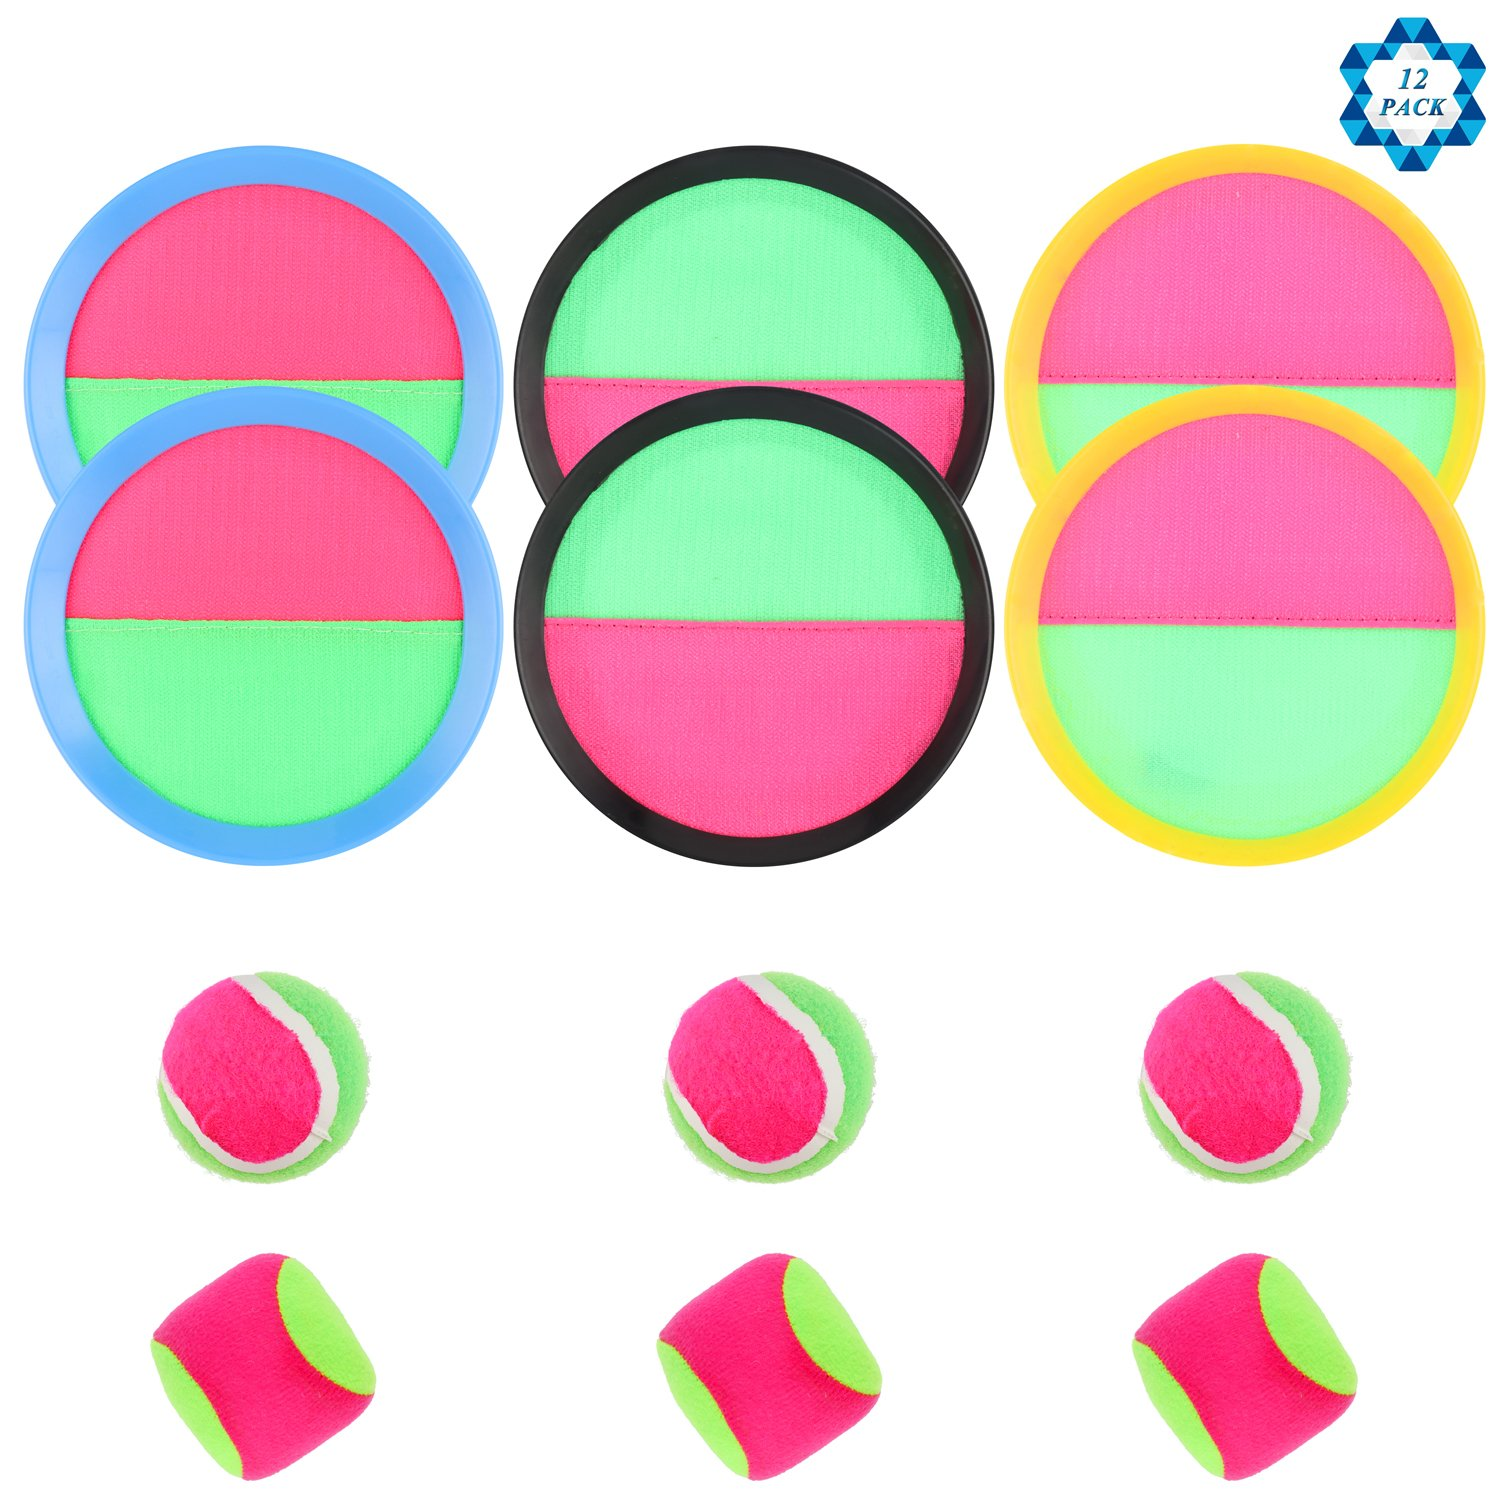 SOTOGO 12 Pack Paddle Toss and Catch Game Set Catch Ball Paddle Game Set Including 6 toss & catch paddles, 6 Balls